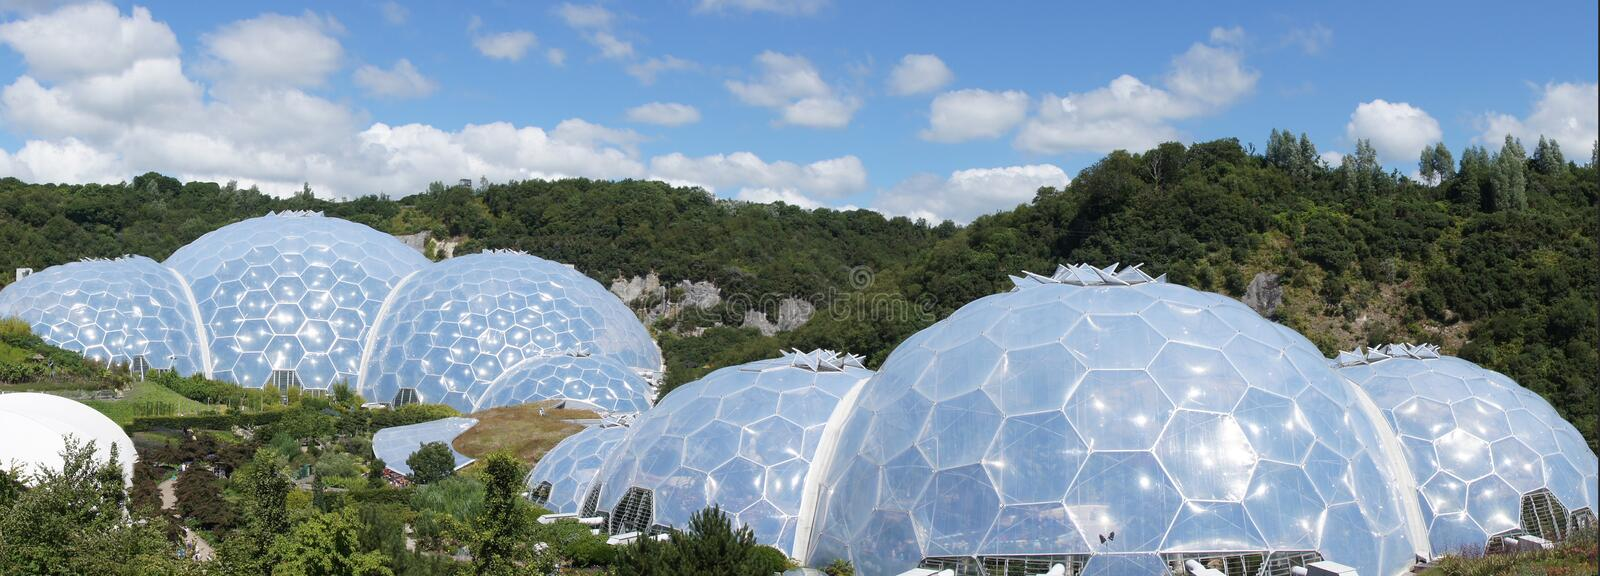 Eden Project biomes in St. Austell Cornwall royalty free stock photos